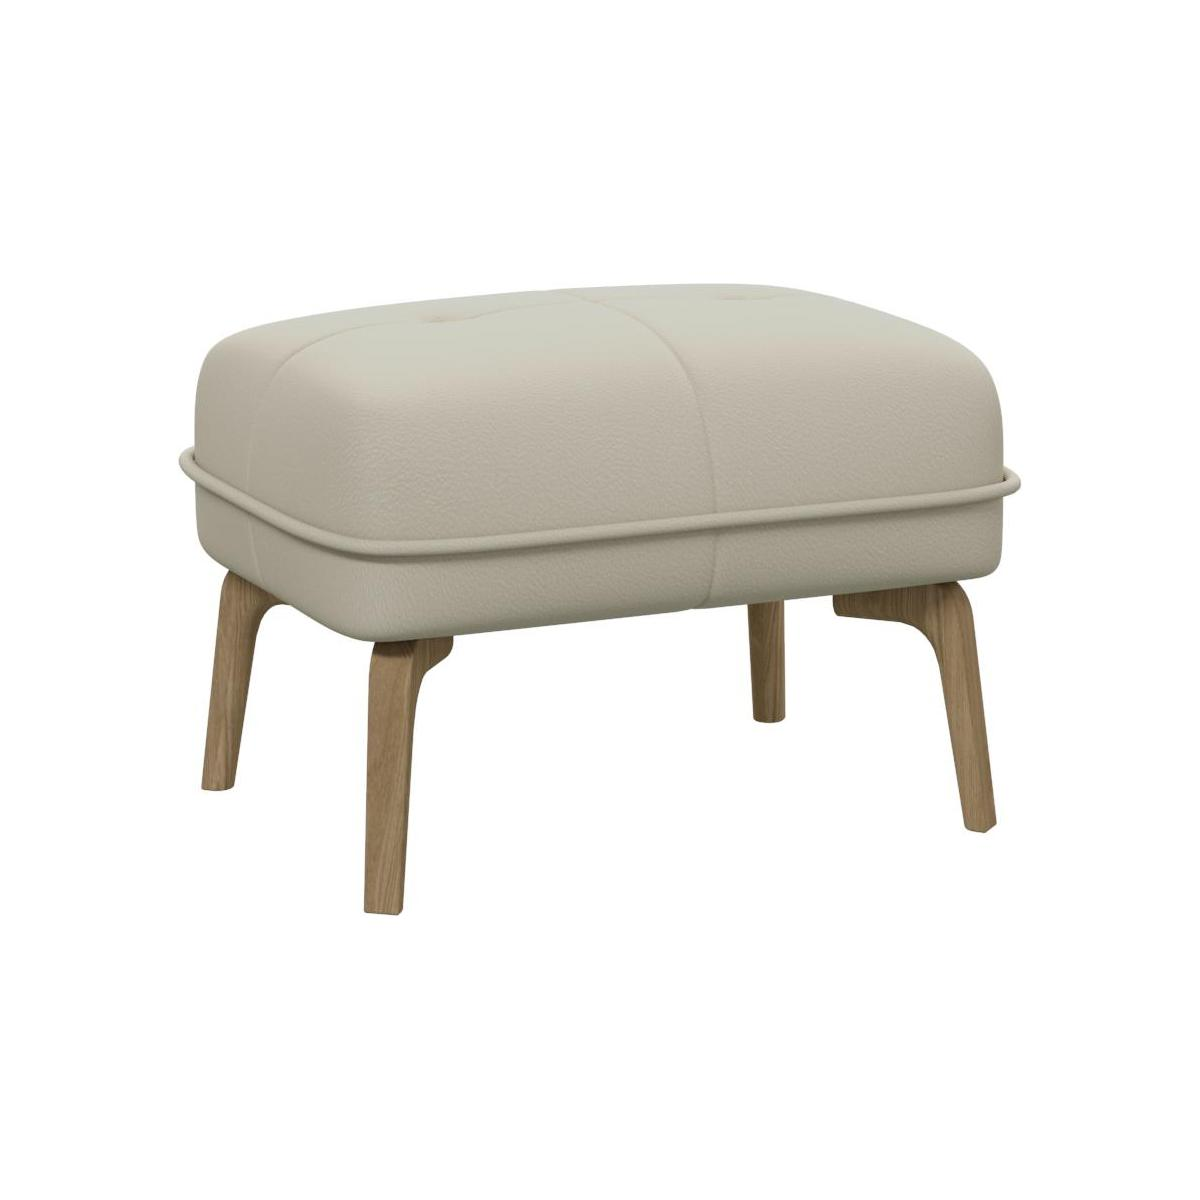 Footstool in Savoy semi-aniline leather, off white and natural oak feet n°1